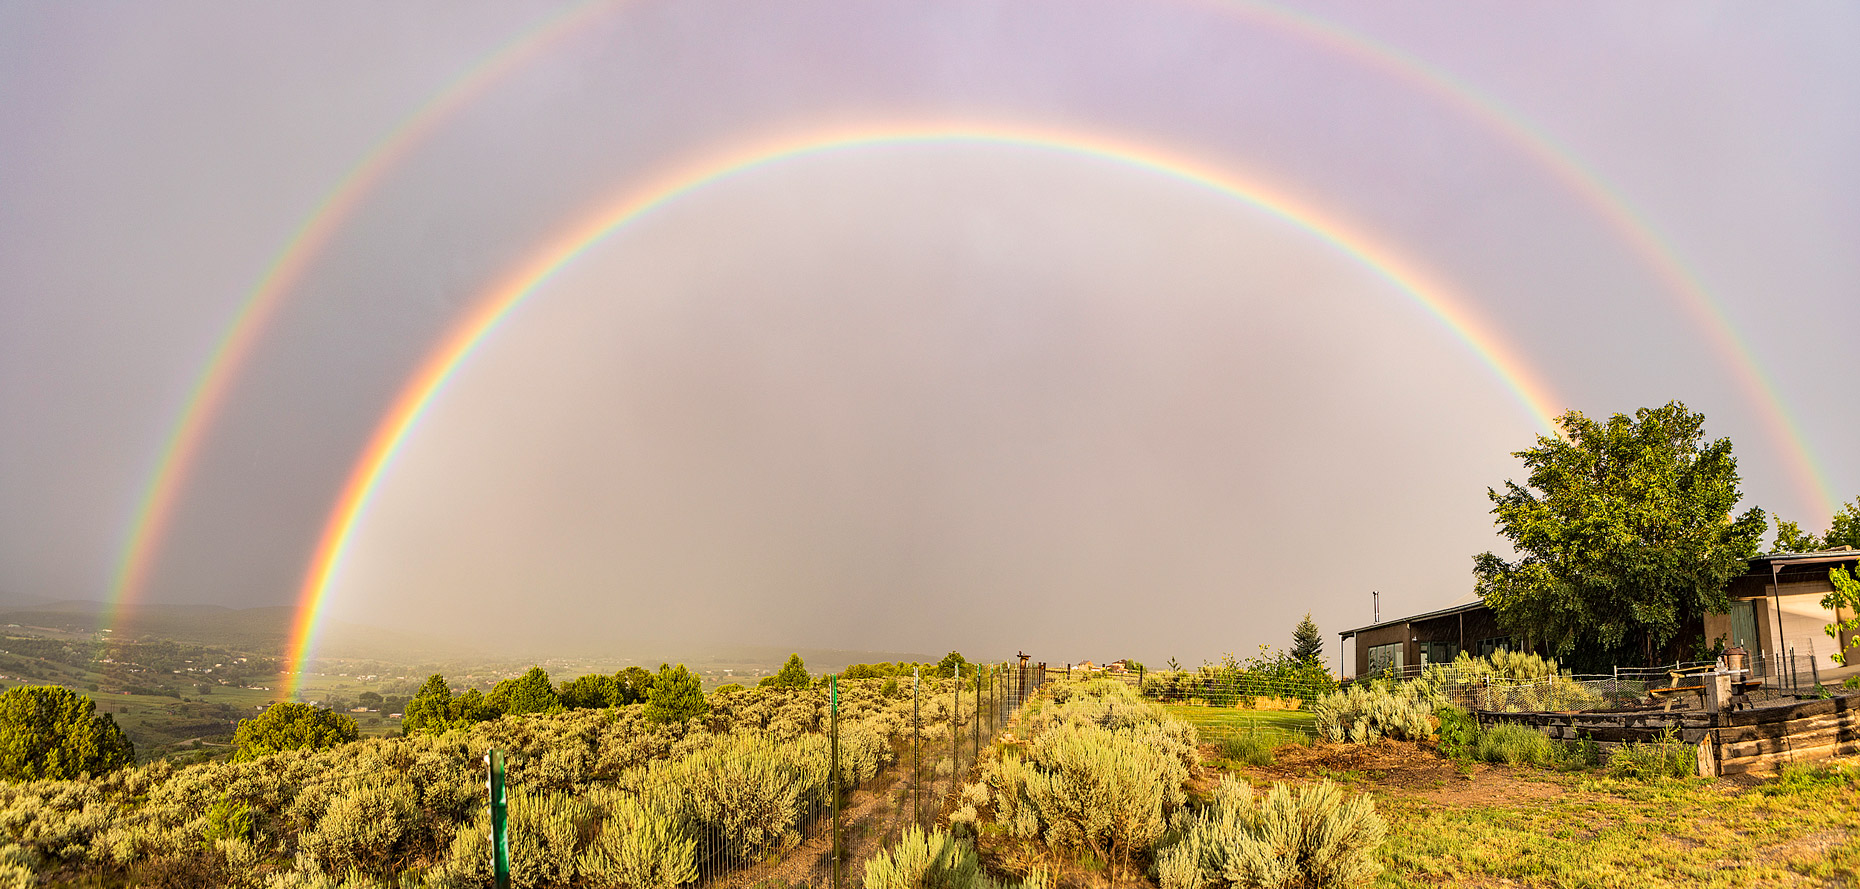 Arrroyo Hondo, New Mexico - Rainbow